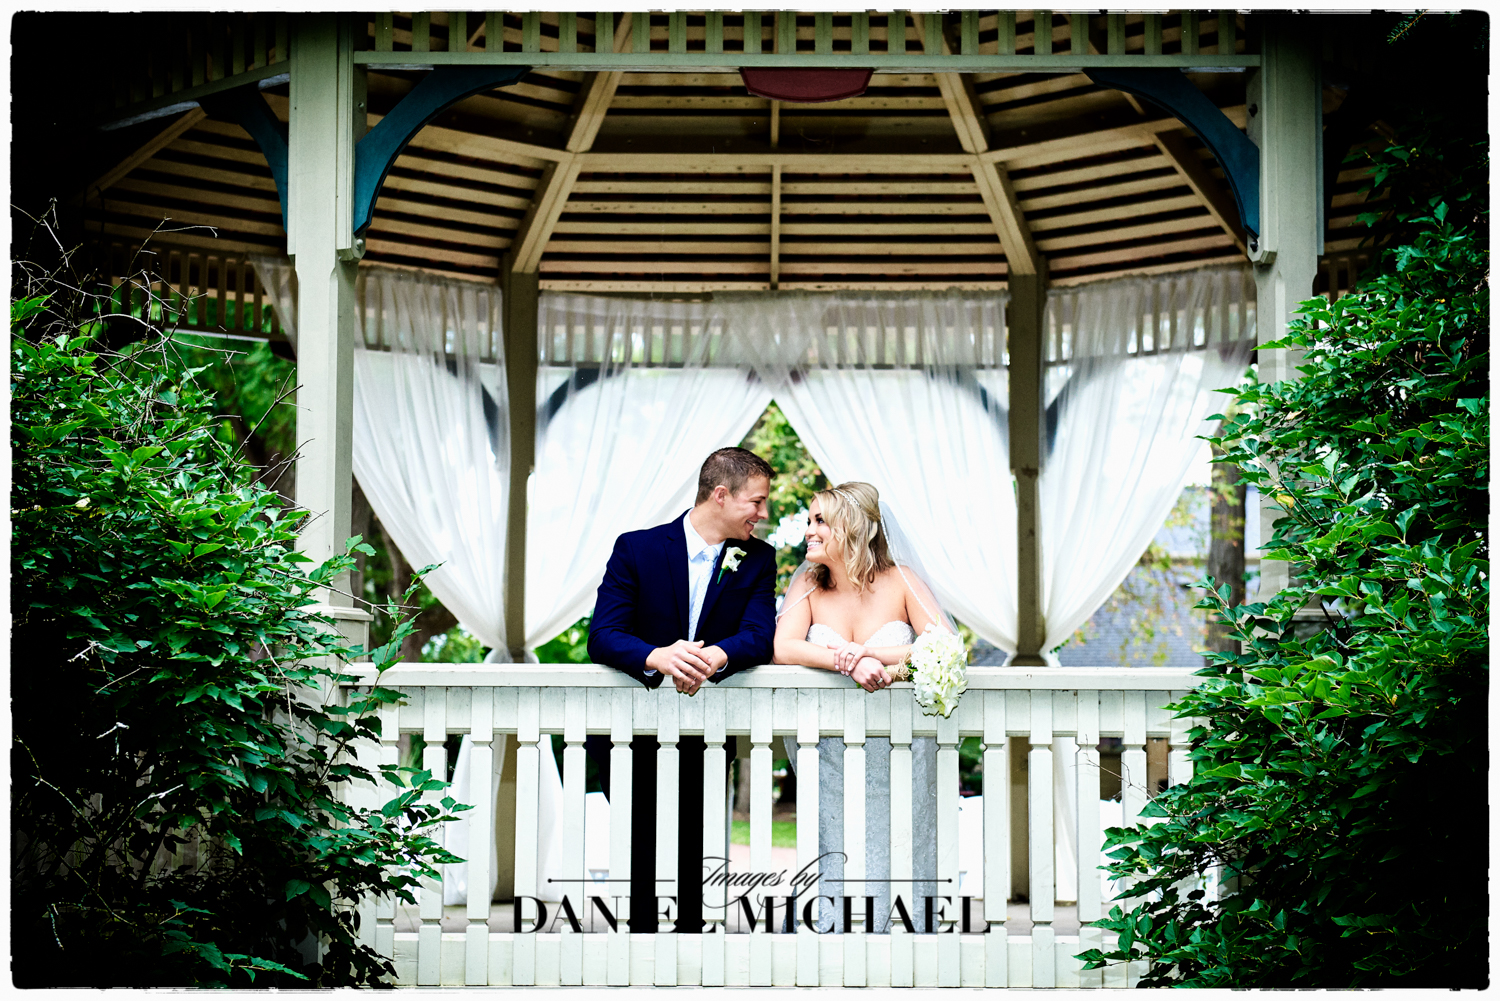 Wedding Photographer Benhams Grove